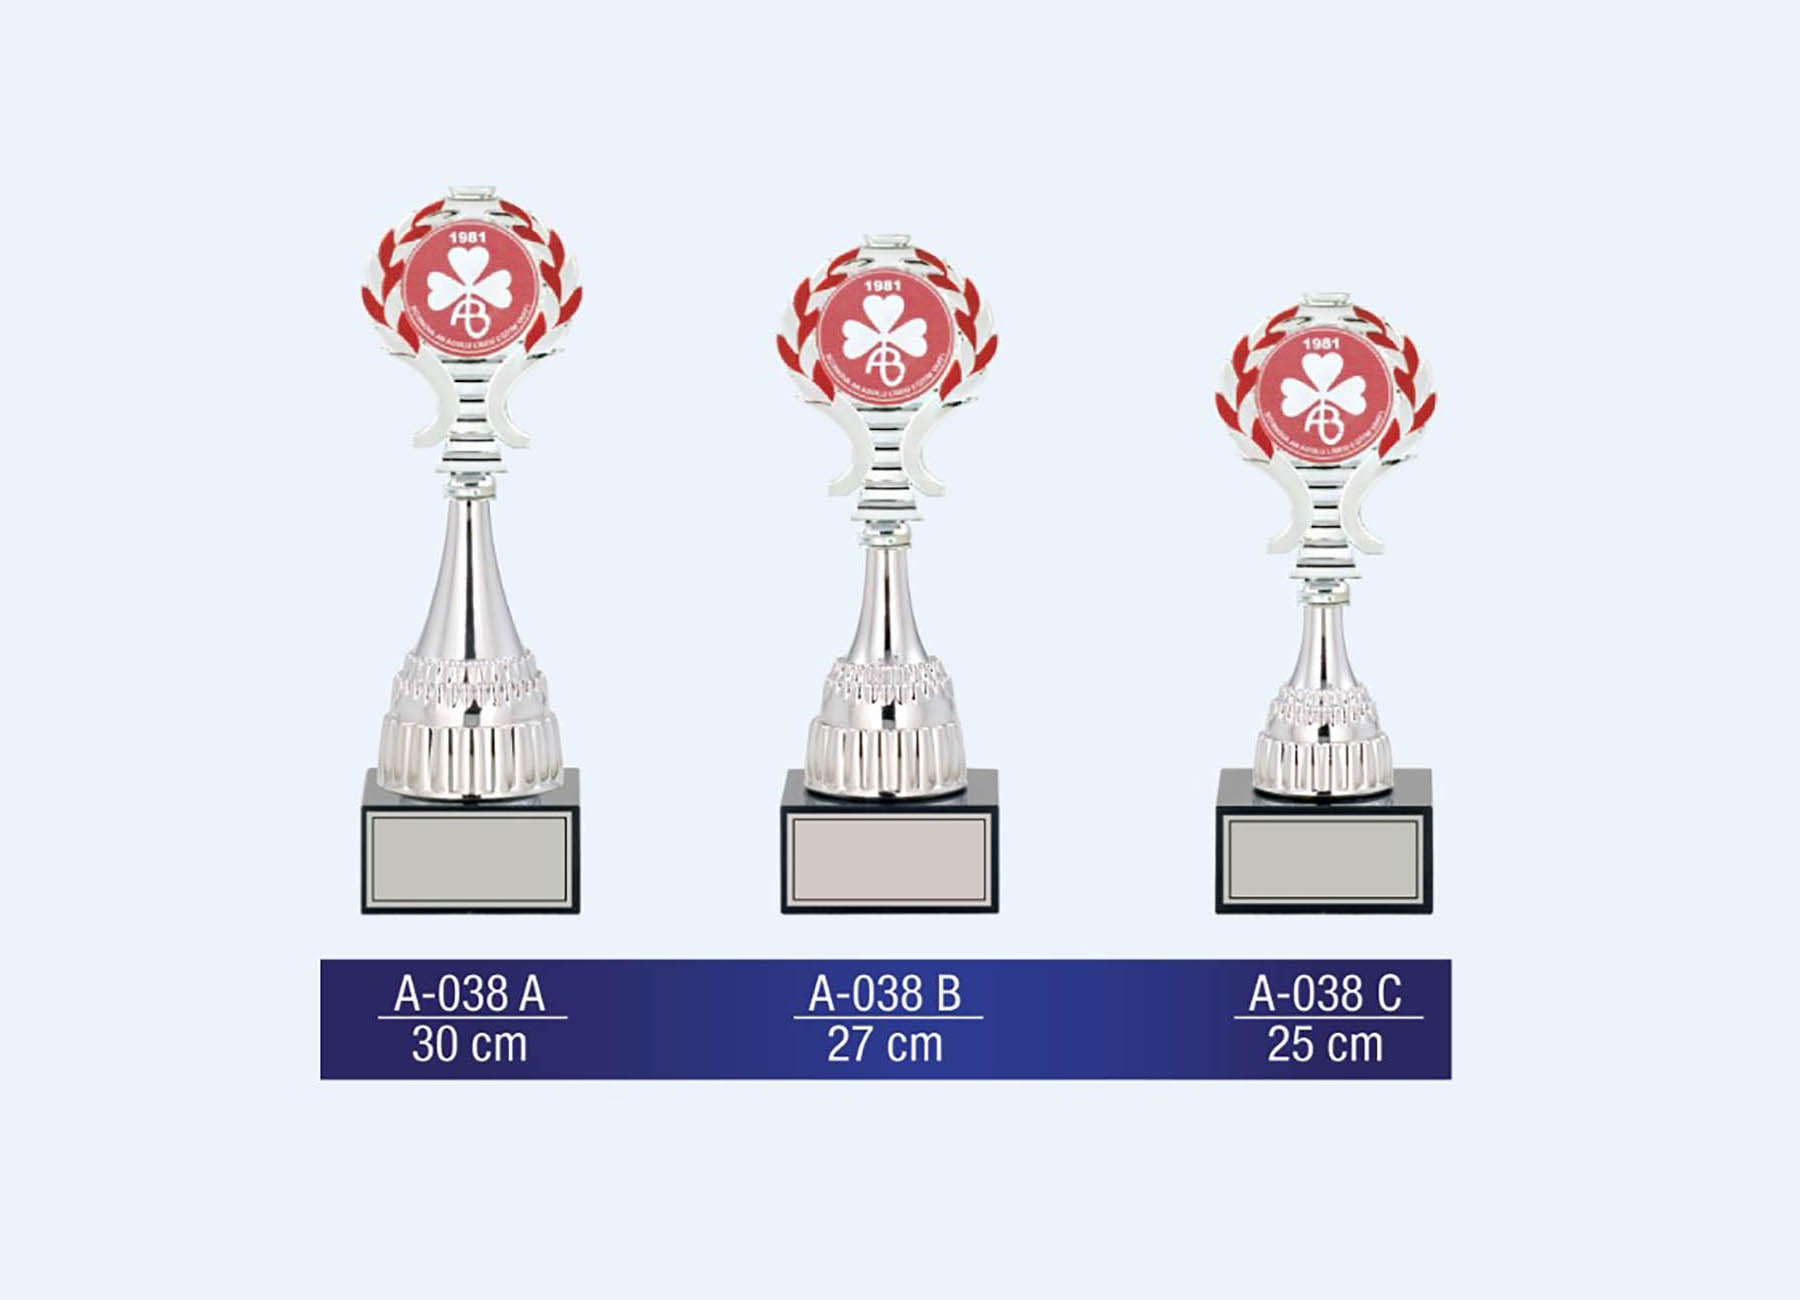 A-038 General Cups